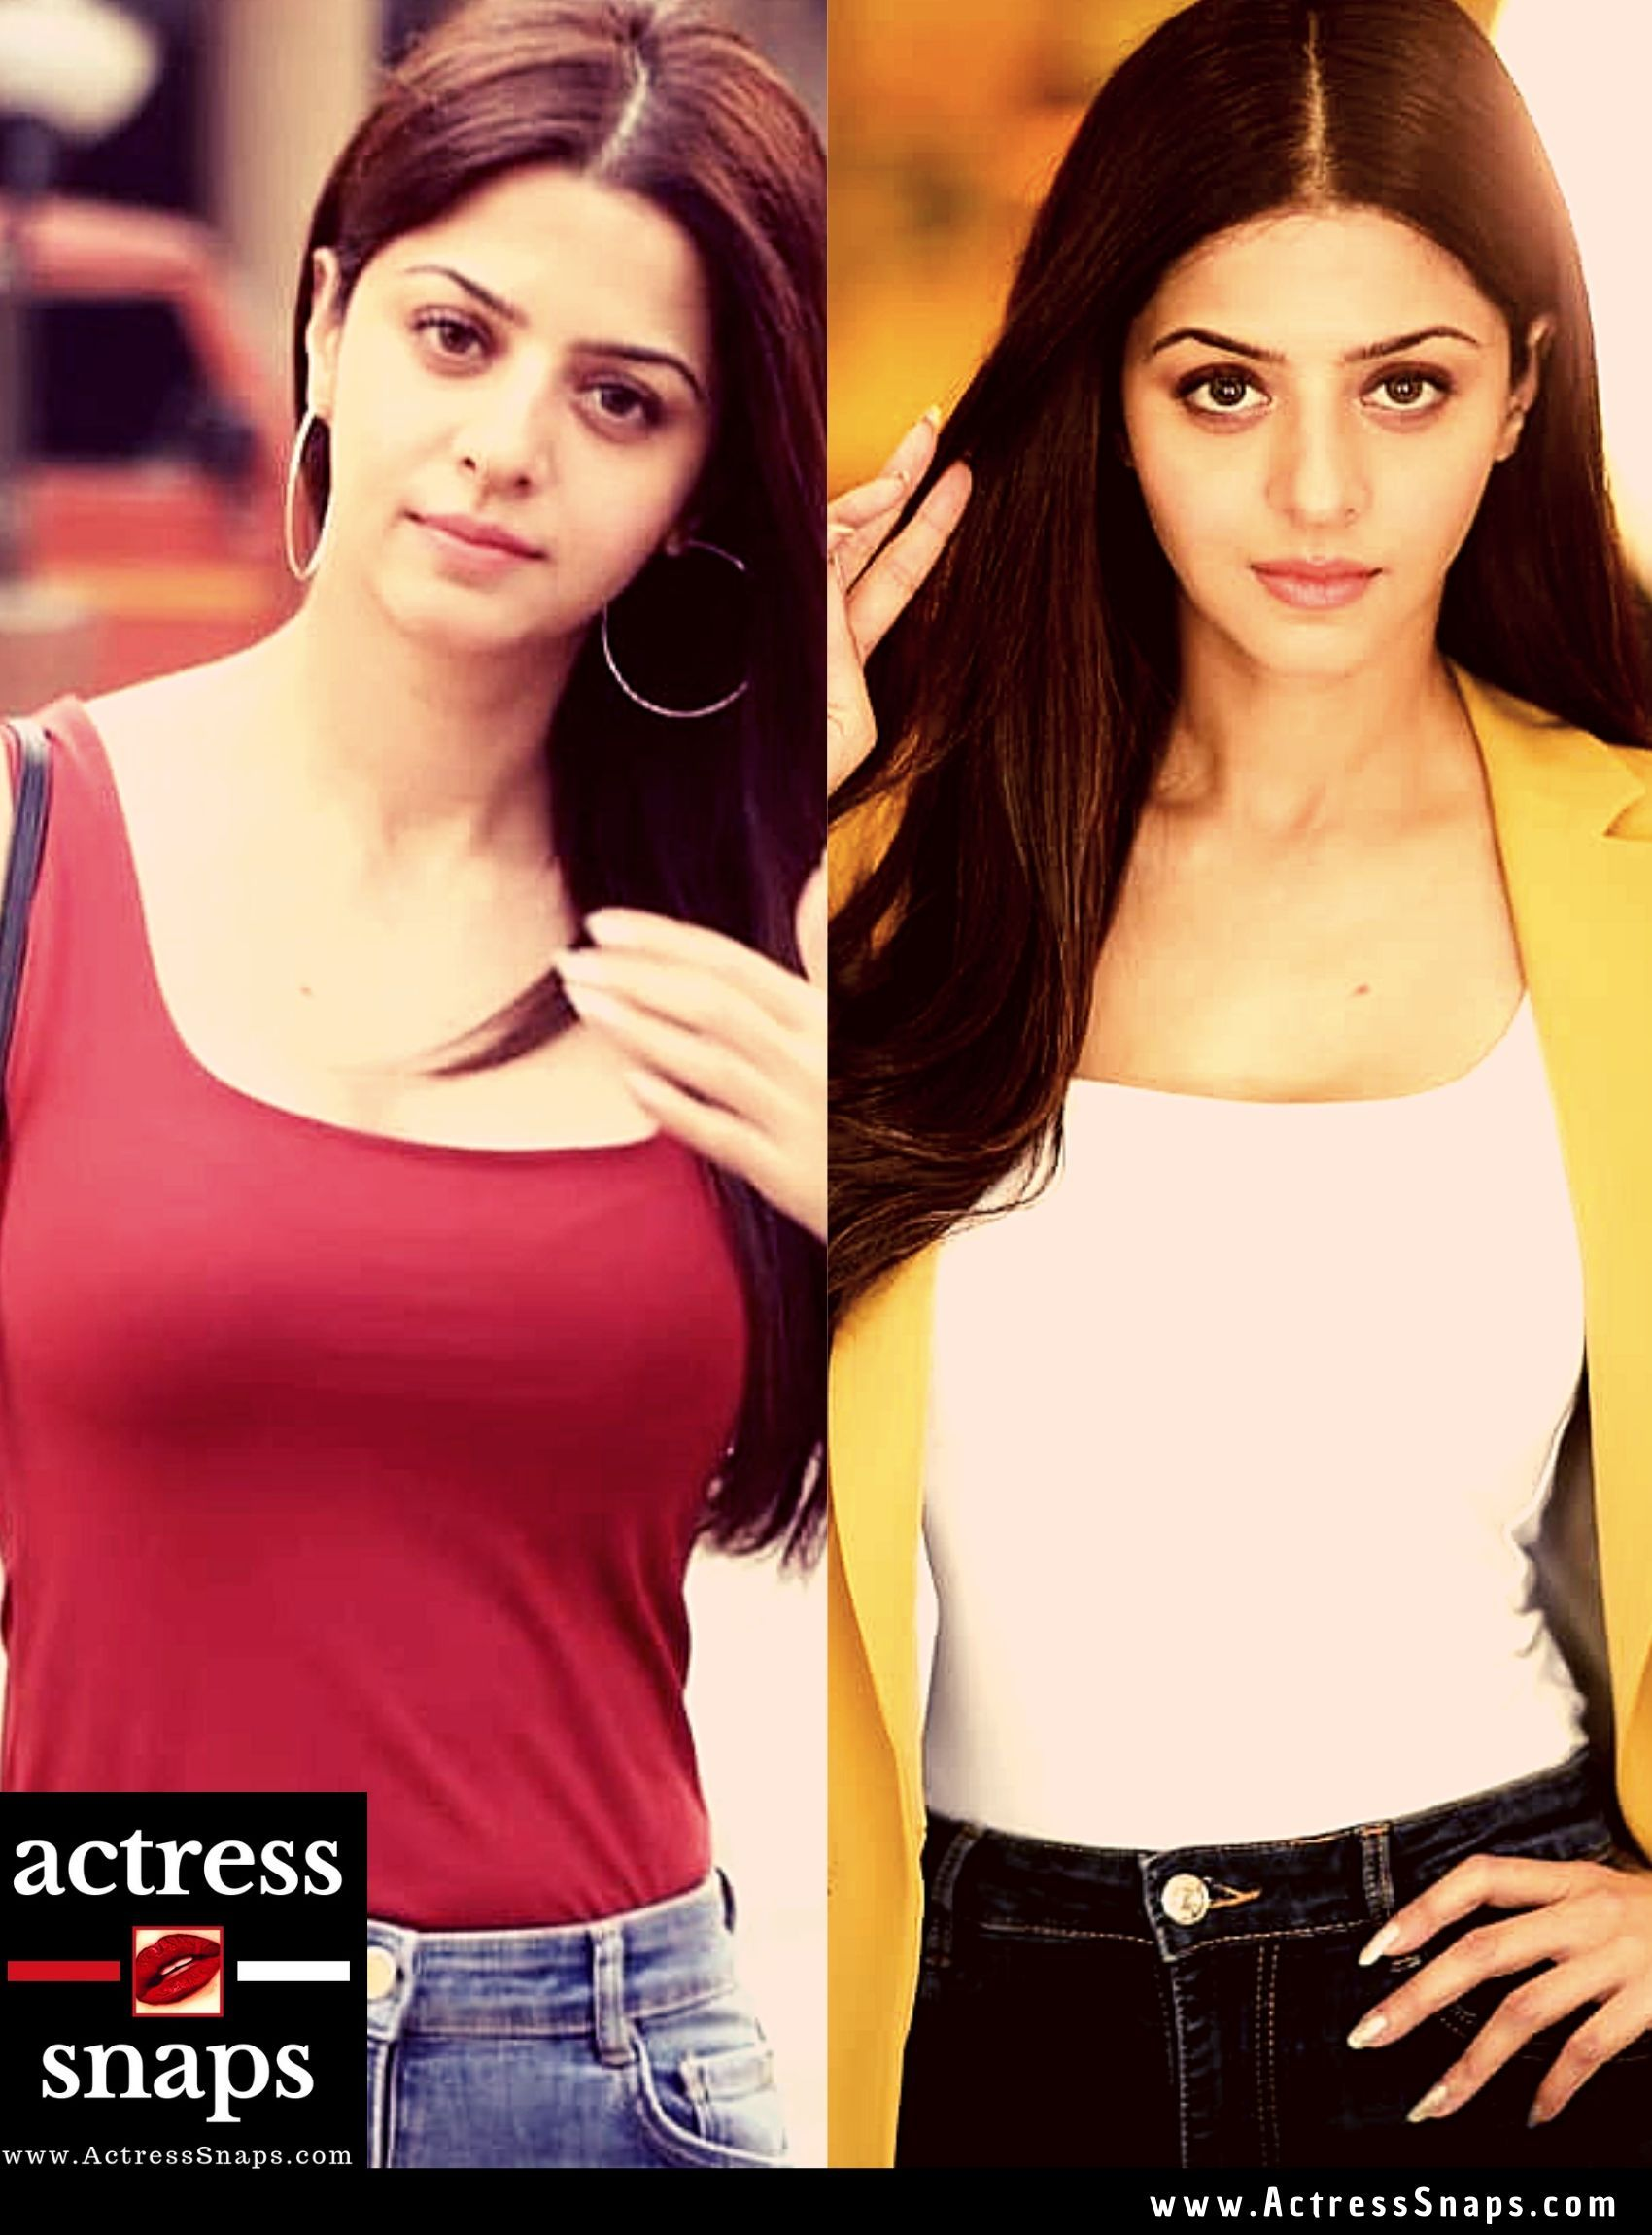 Sexy Vedhika Instagram Photos - Sexy Actress Pictures   Hot Actress Pictures - ActressSnaps.com